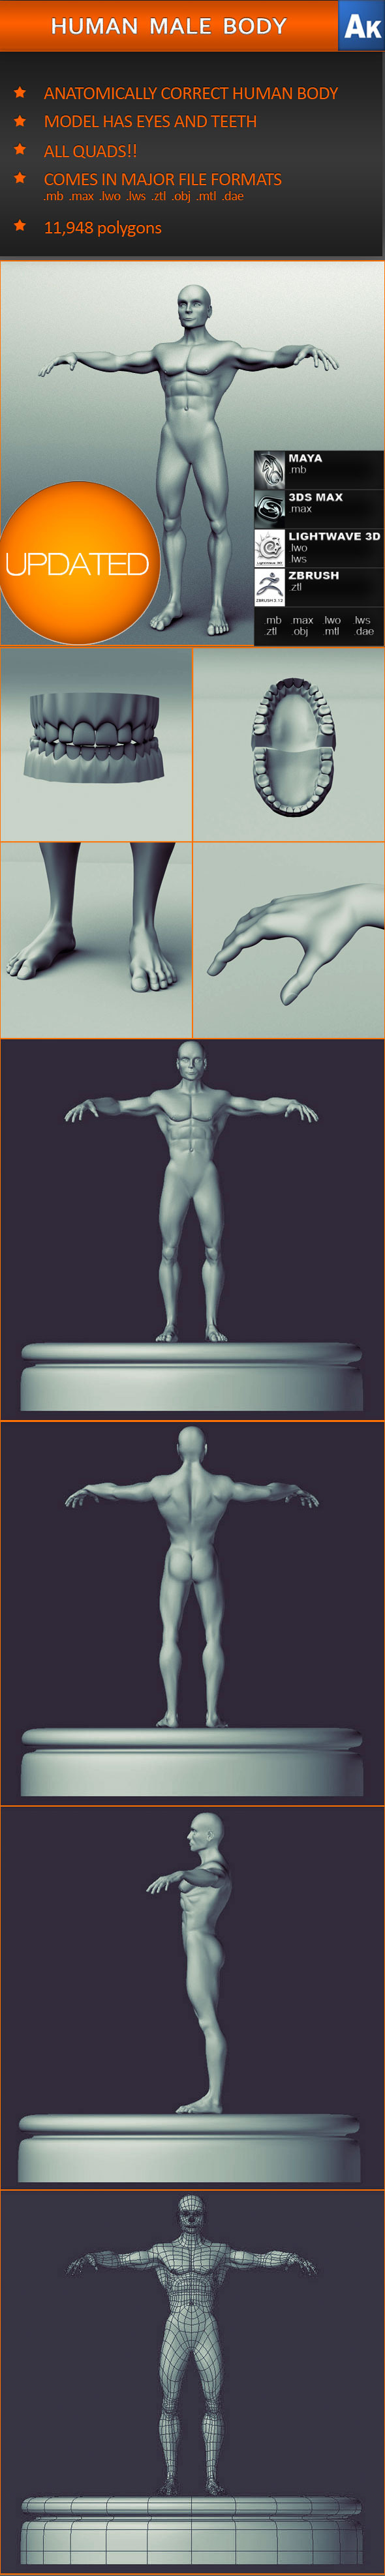 Human Male Body (Anatomically correct) - 3DOcean Item for Sale